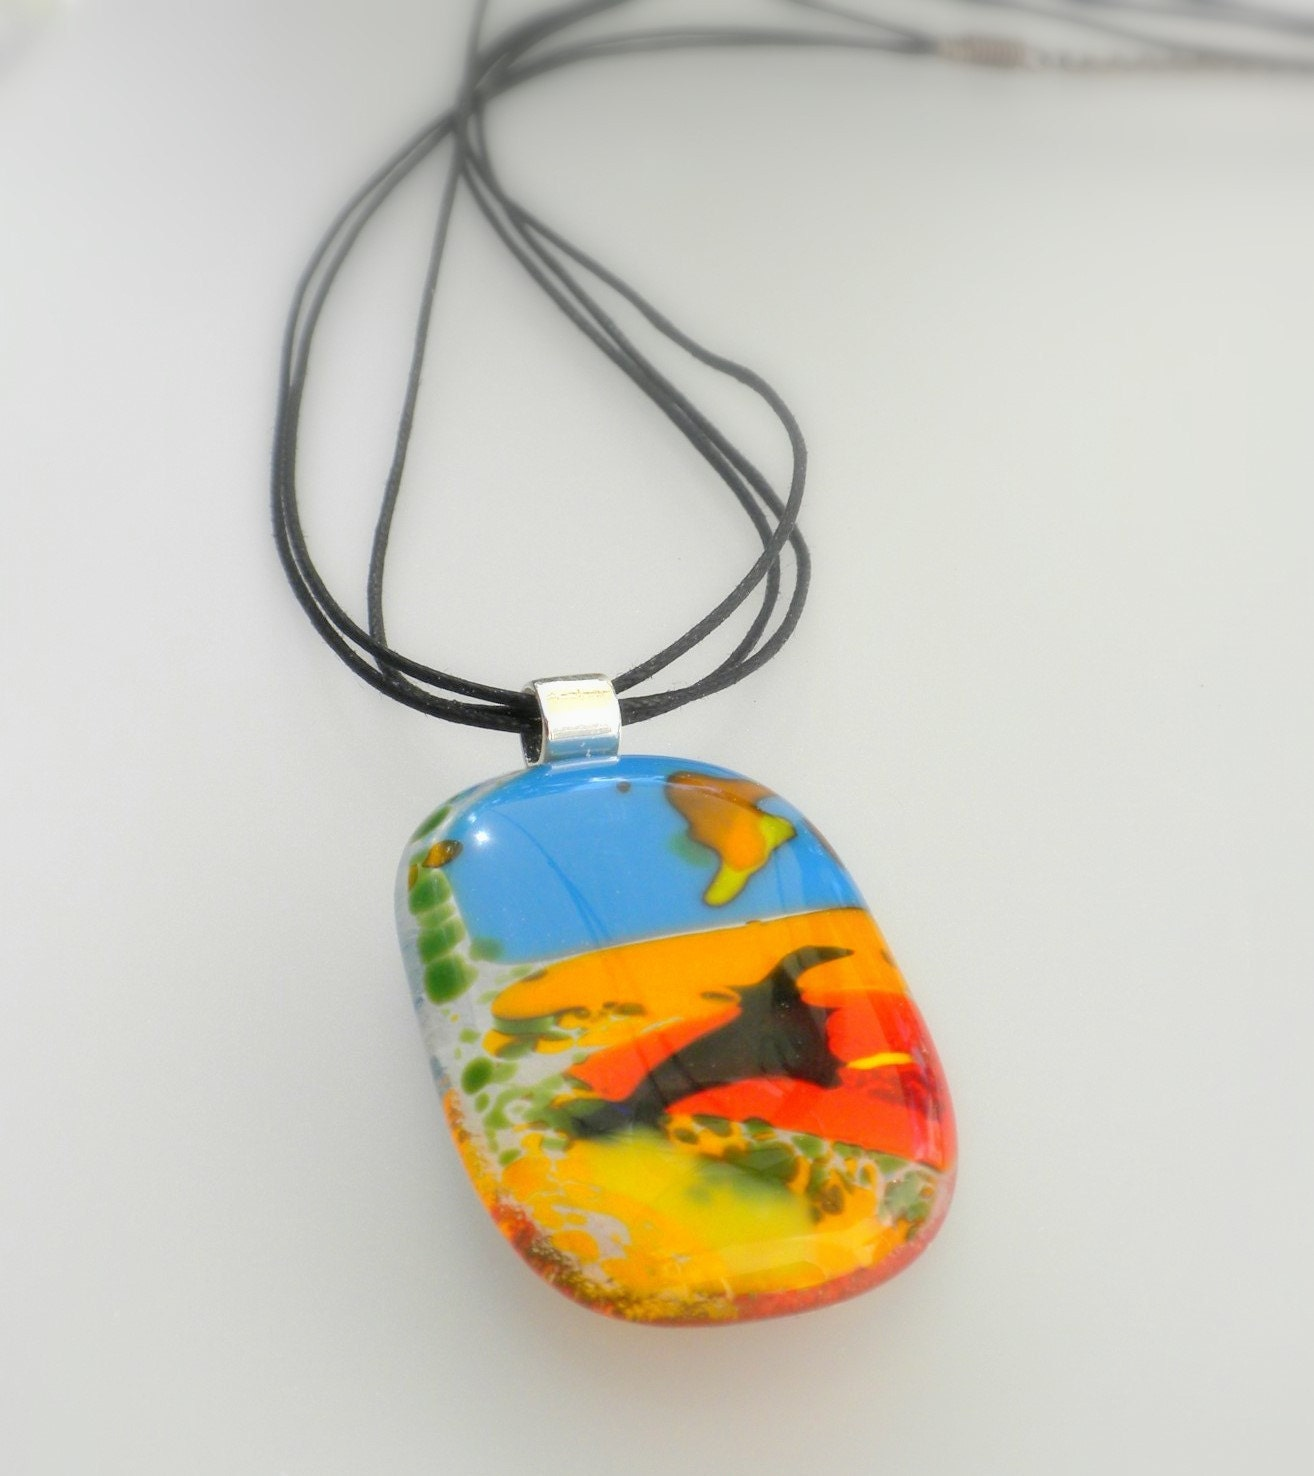 At The Lake - handmade modern fused glass necklace